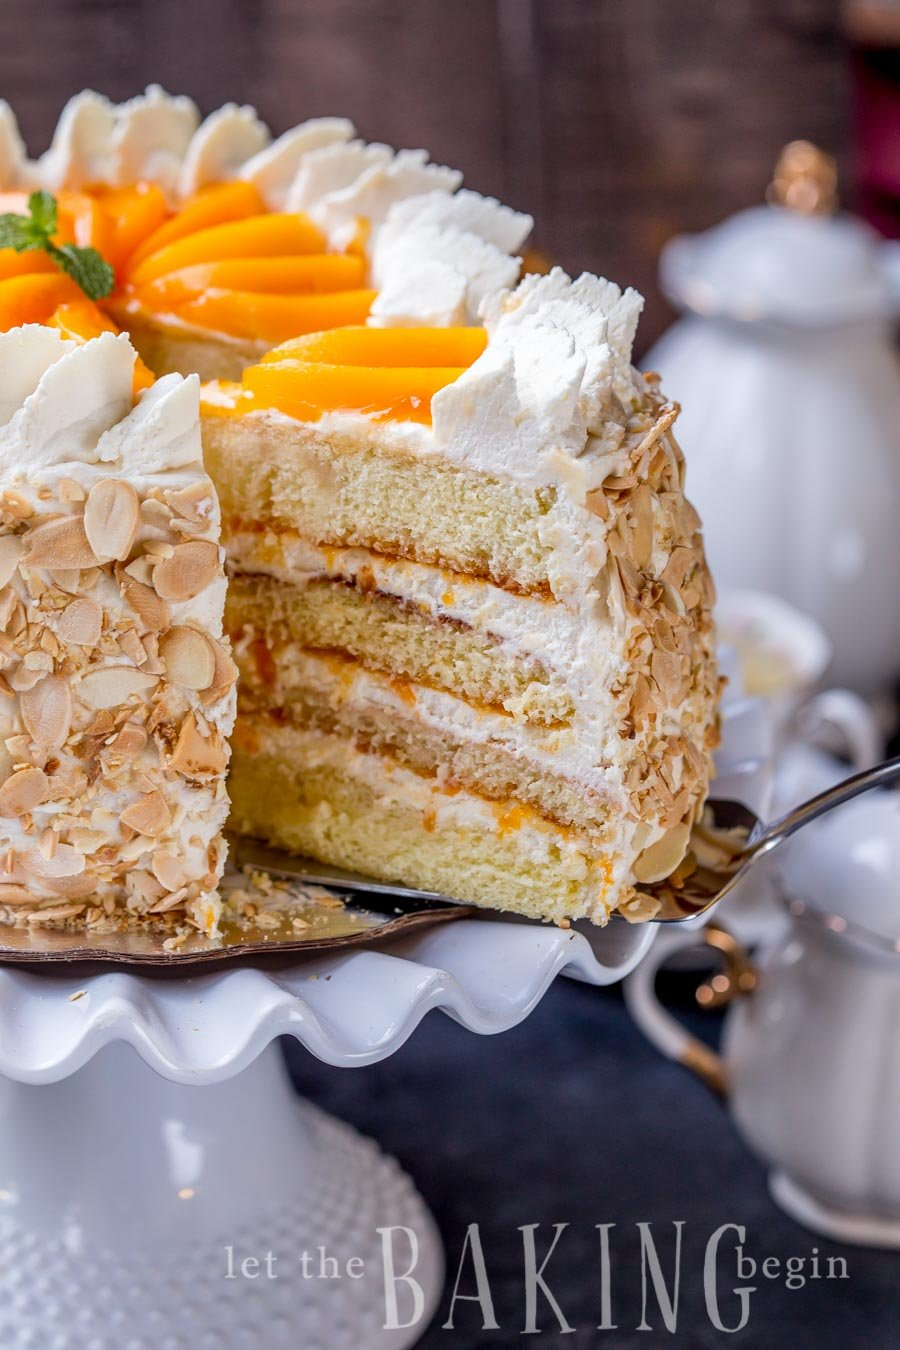 Peaches and Cream Cake Recipe - Easy Dessert made of Soft layers of Sponge Cake with Chunky Peach Preserve and lightly sweetened Whipped Cream. Roasted Almonds add a nice pleasant crunch for a textural contrast.   By Let the Baking Begin!